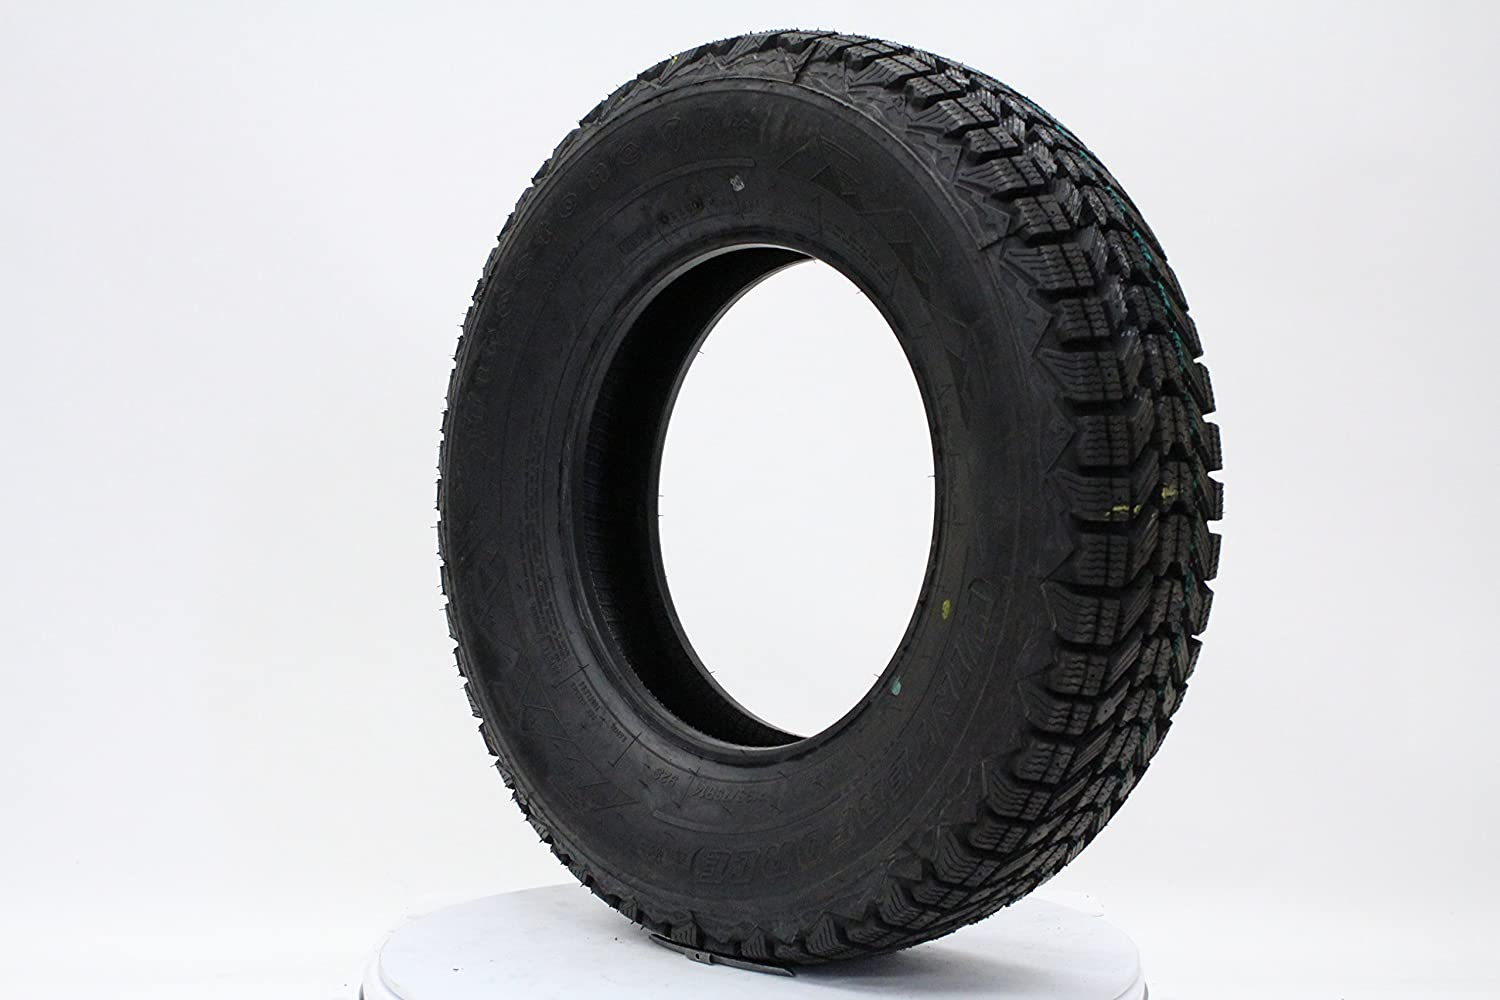 Firestone Winterforce Winter Radial Tire - 225/55R17 97S 114334